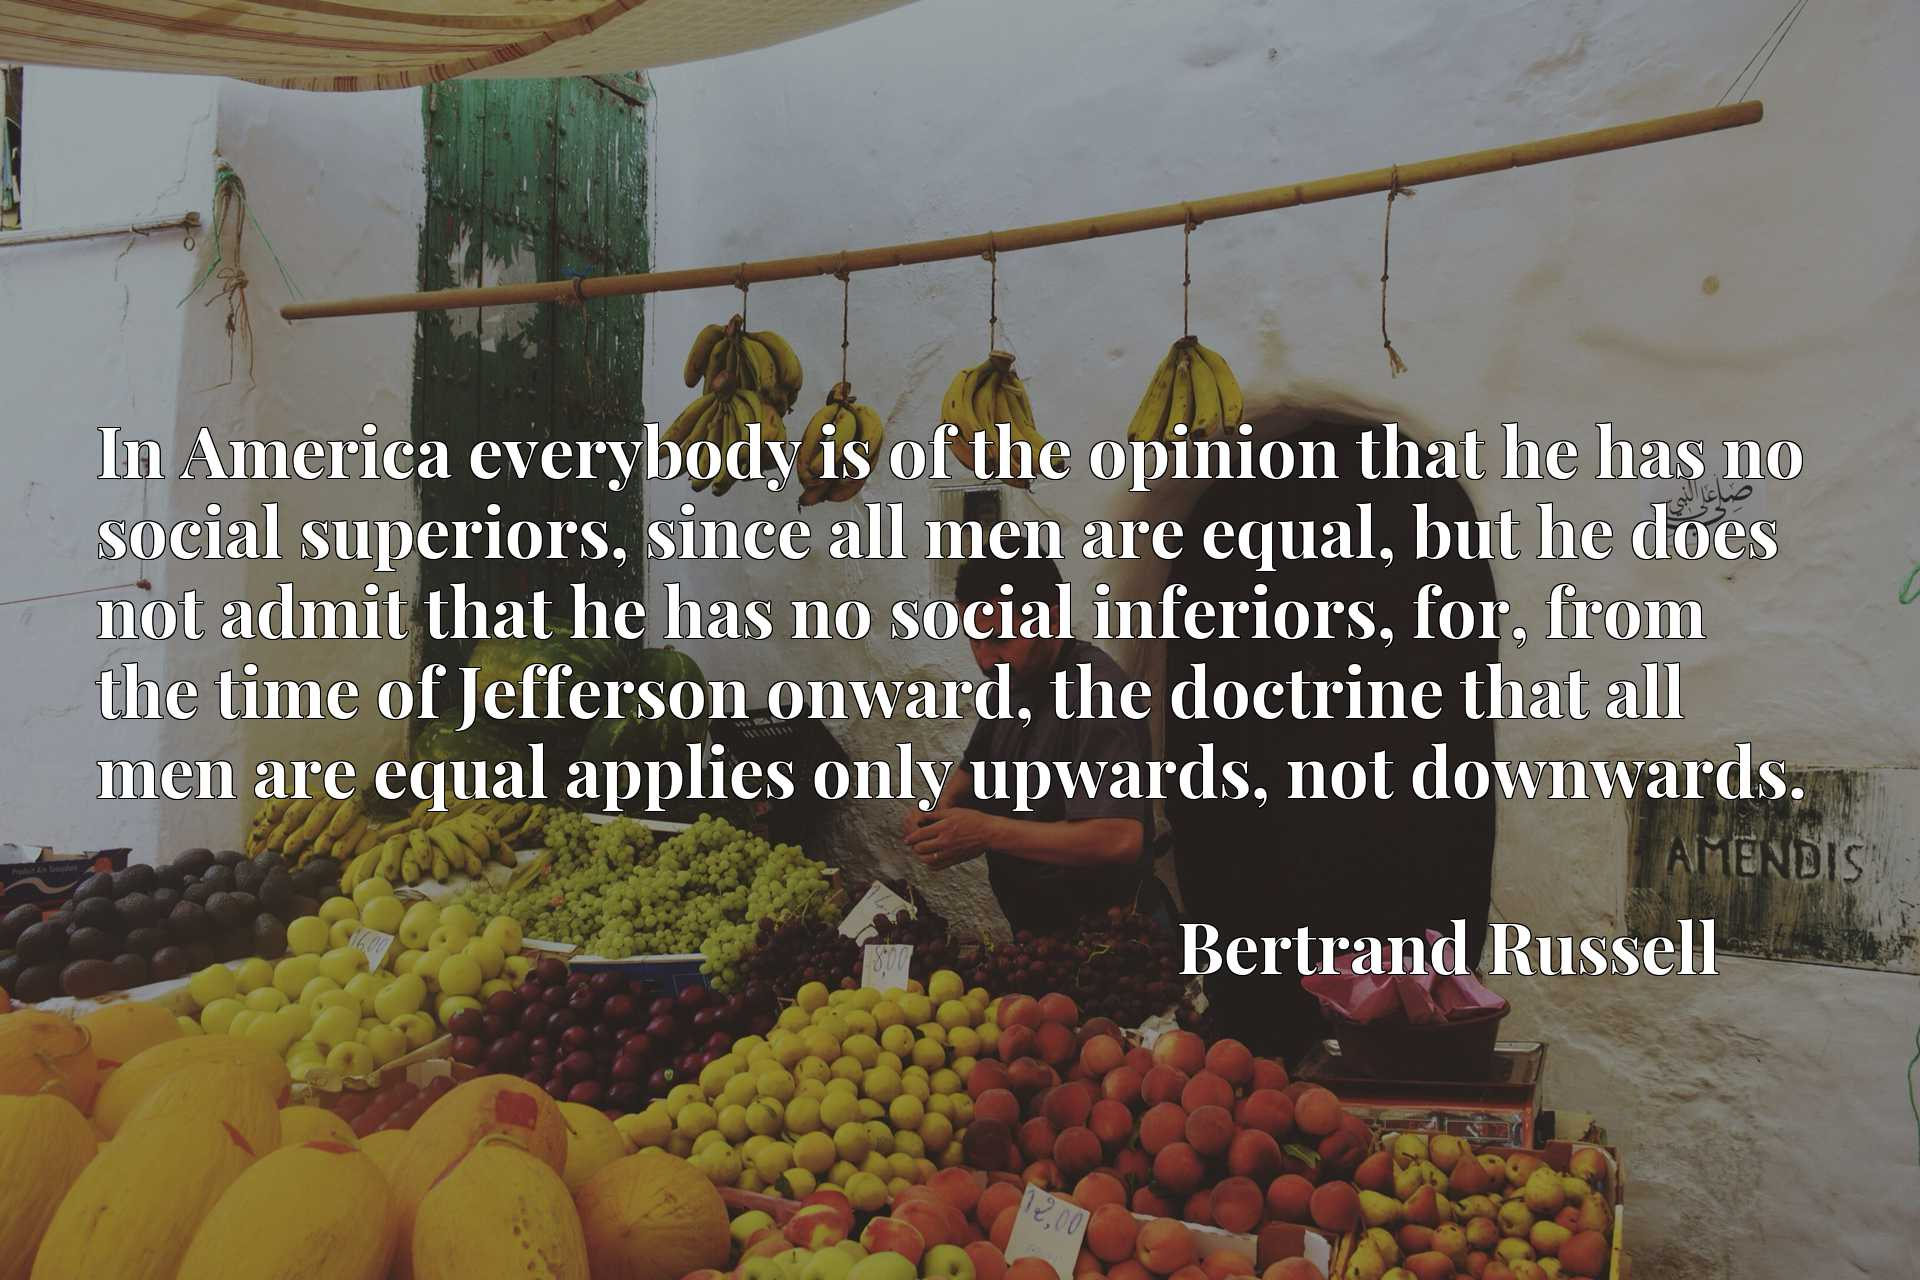 In America everybody is of the opinion that he has no social superiors, since all men are equal, but he does not admit that he has no social inferiors, for, from the time of Jefferson onward, the doctrine that all men are equal applies only upwards, not downwards.